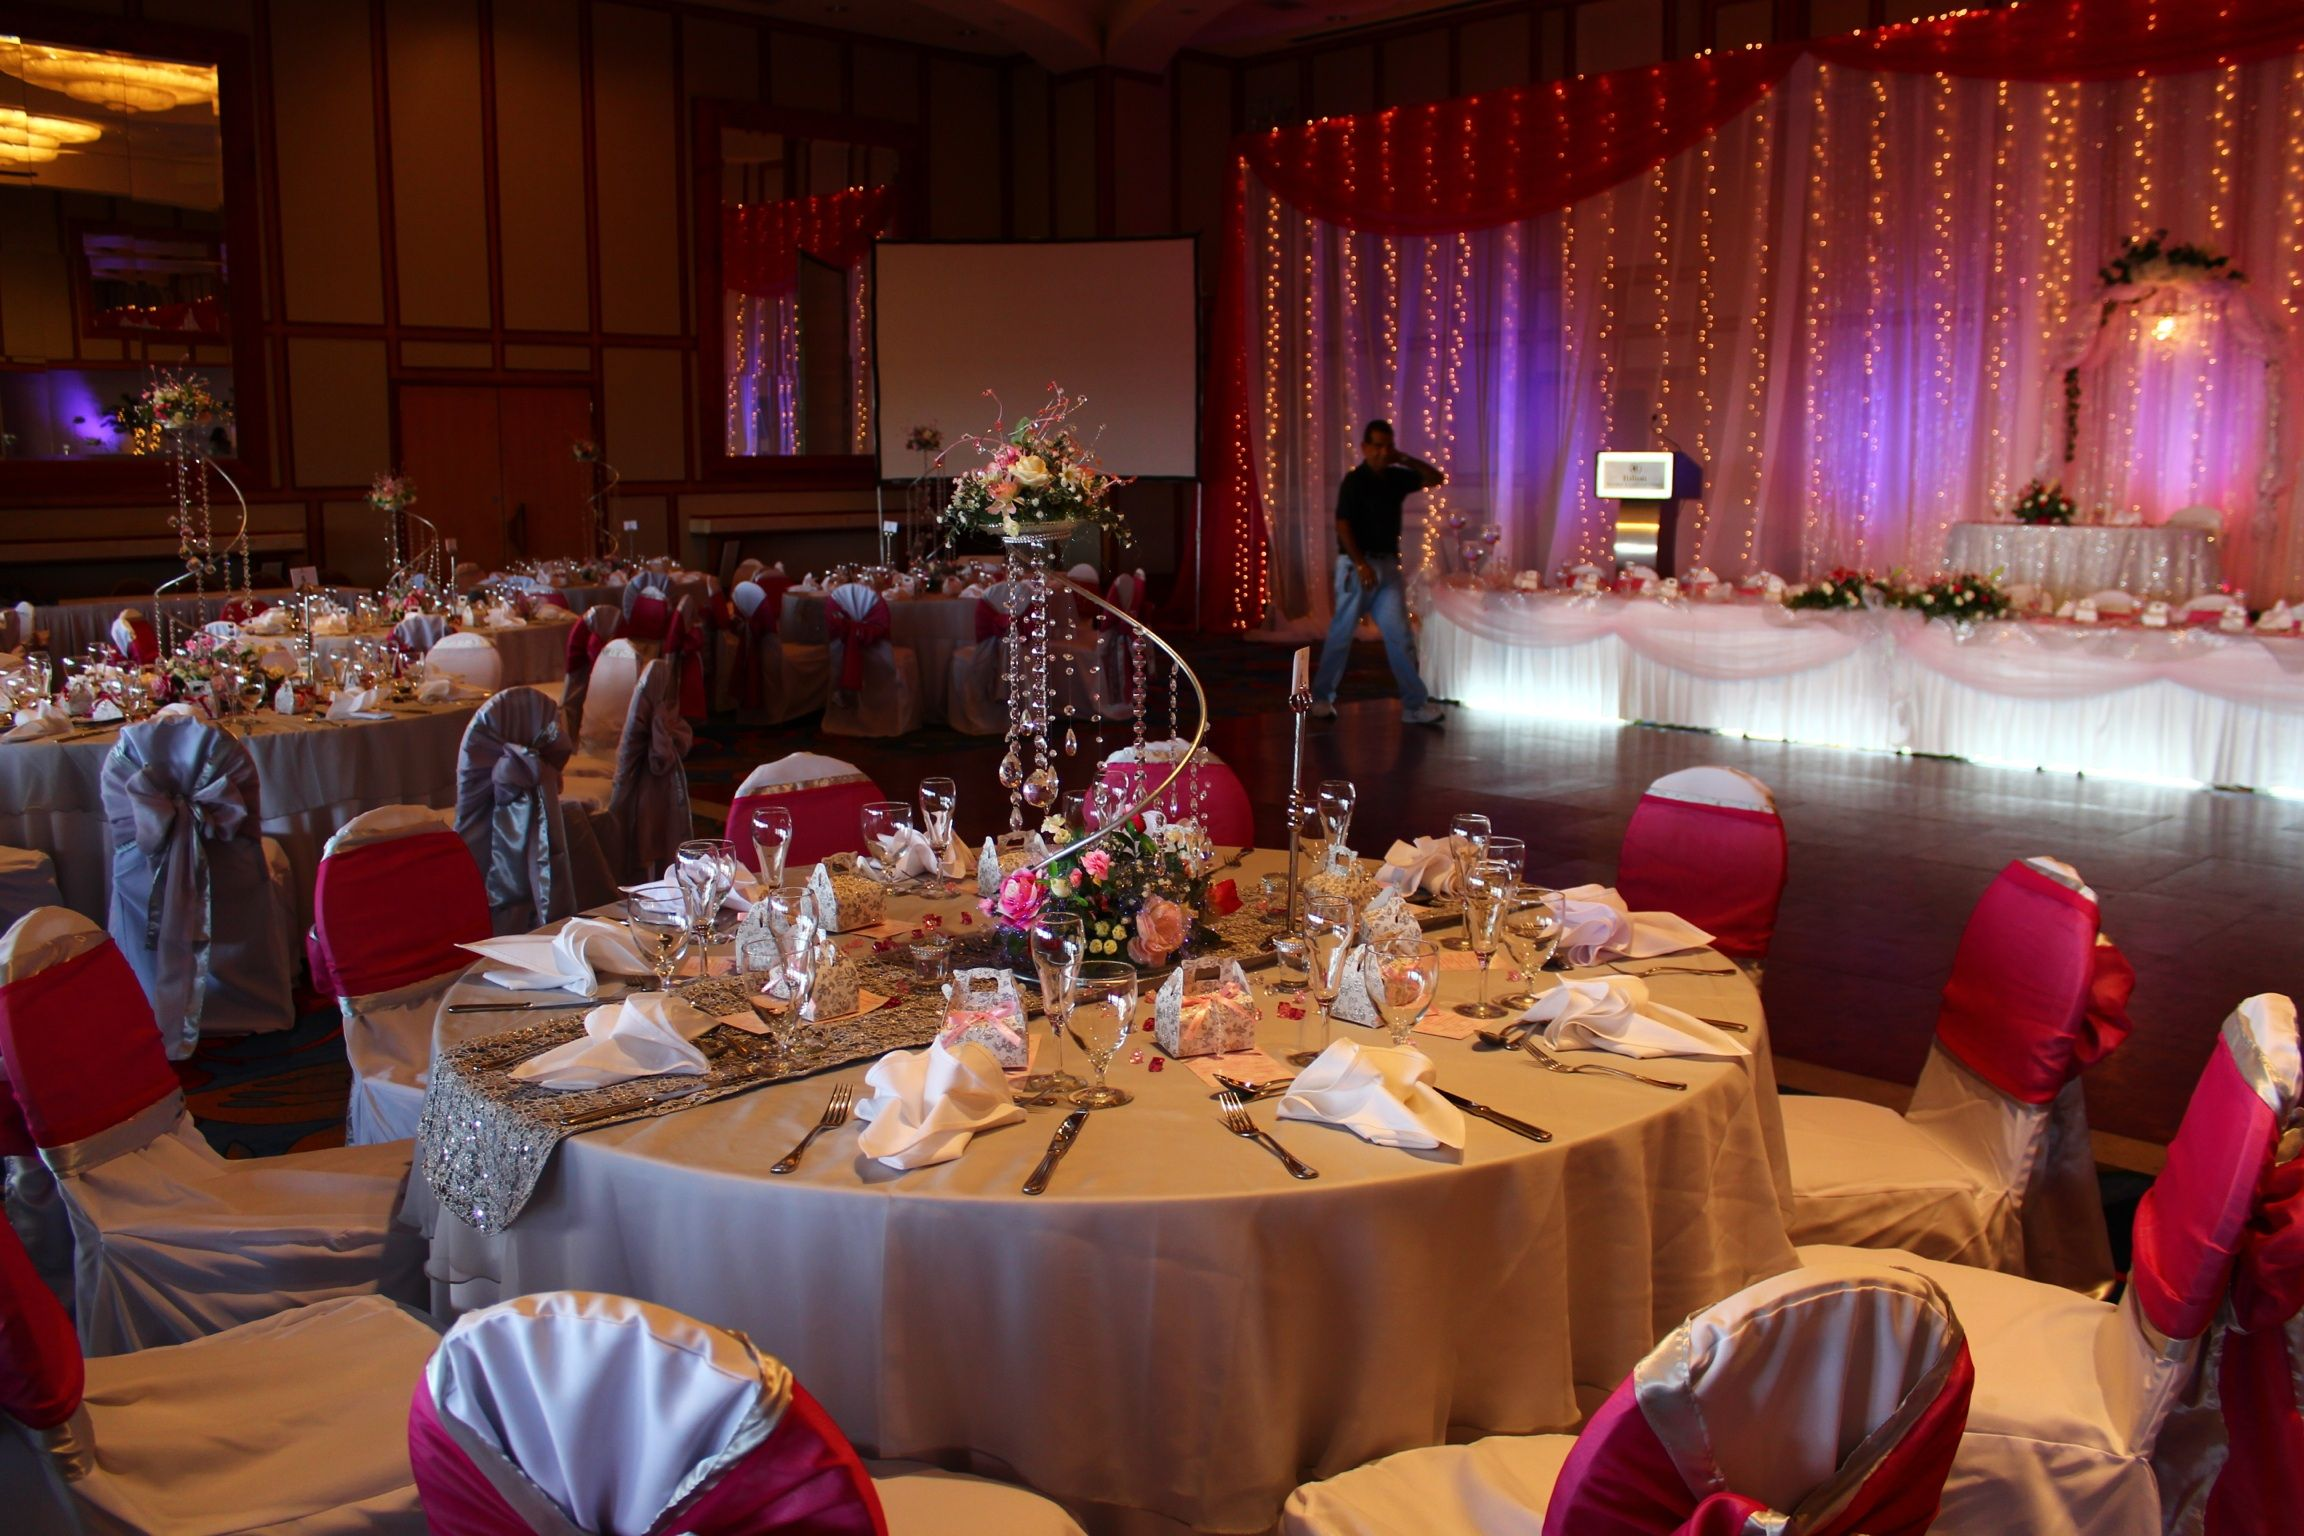 attend singapore centerpieces ideas decorations wedding wed at rent an reception for home die decor to tables decorating